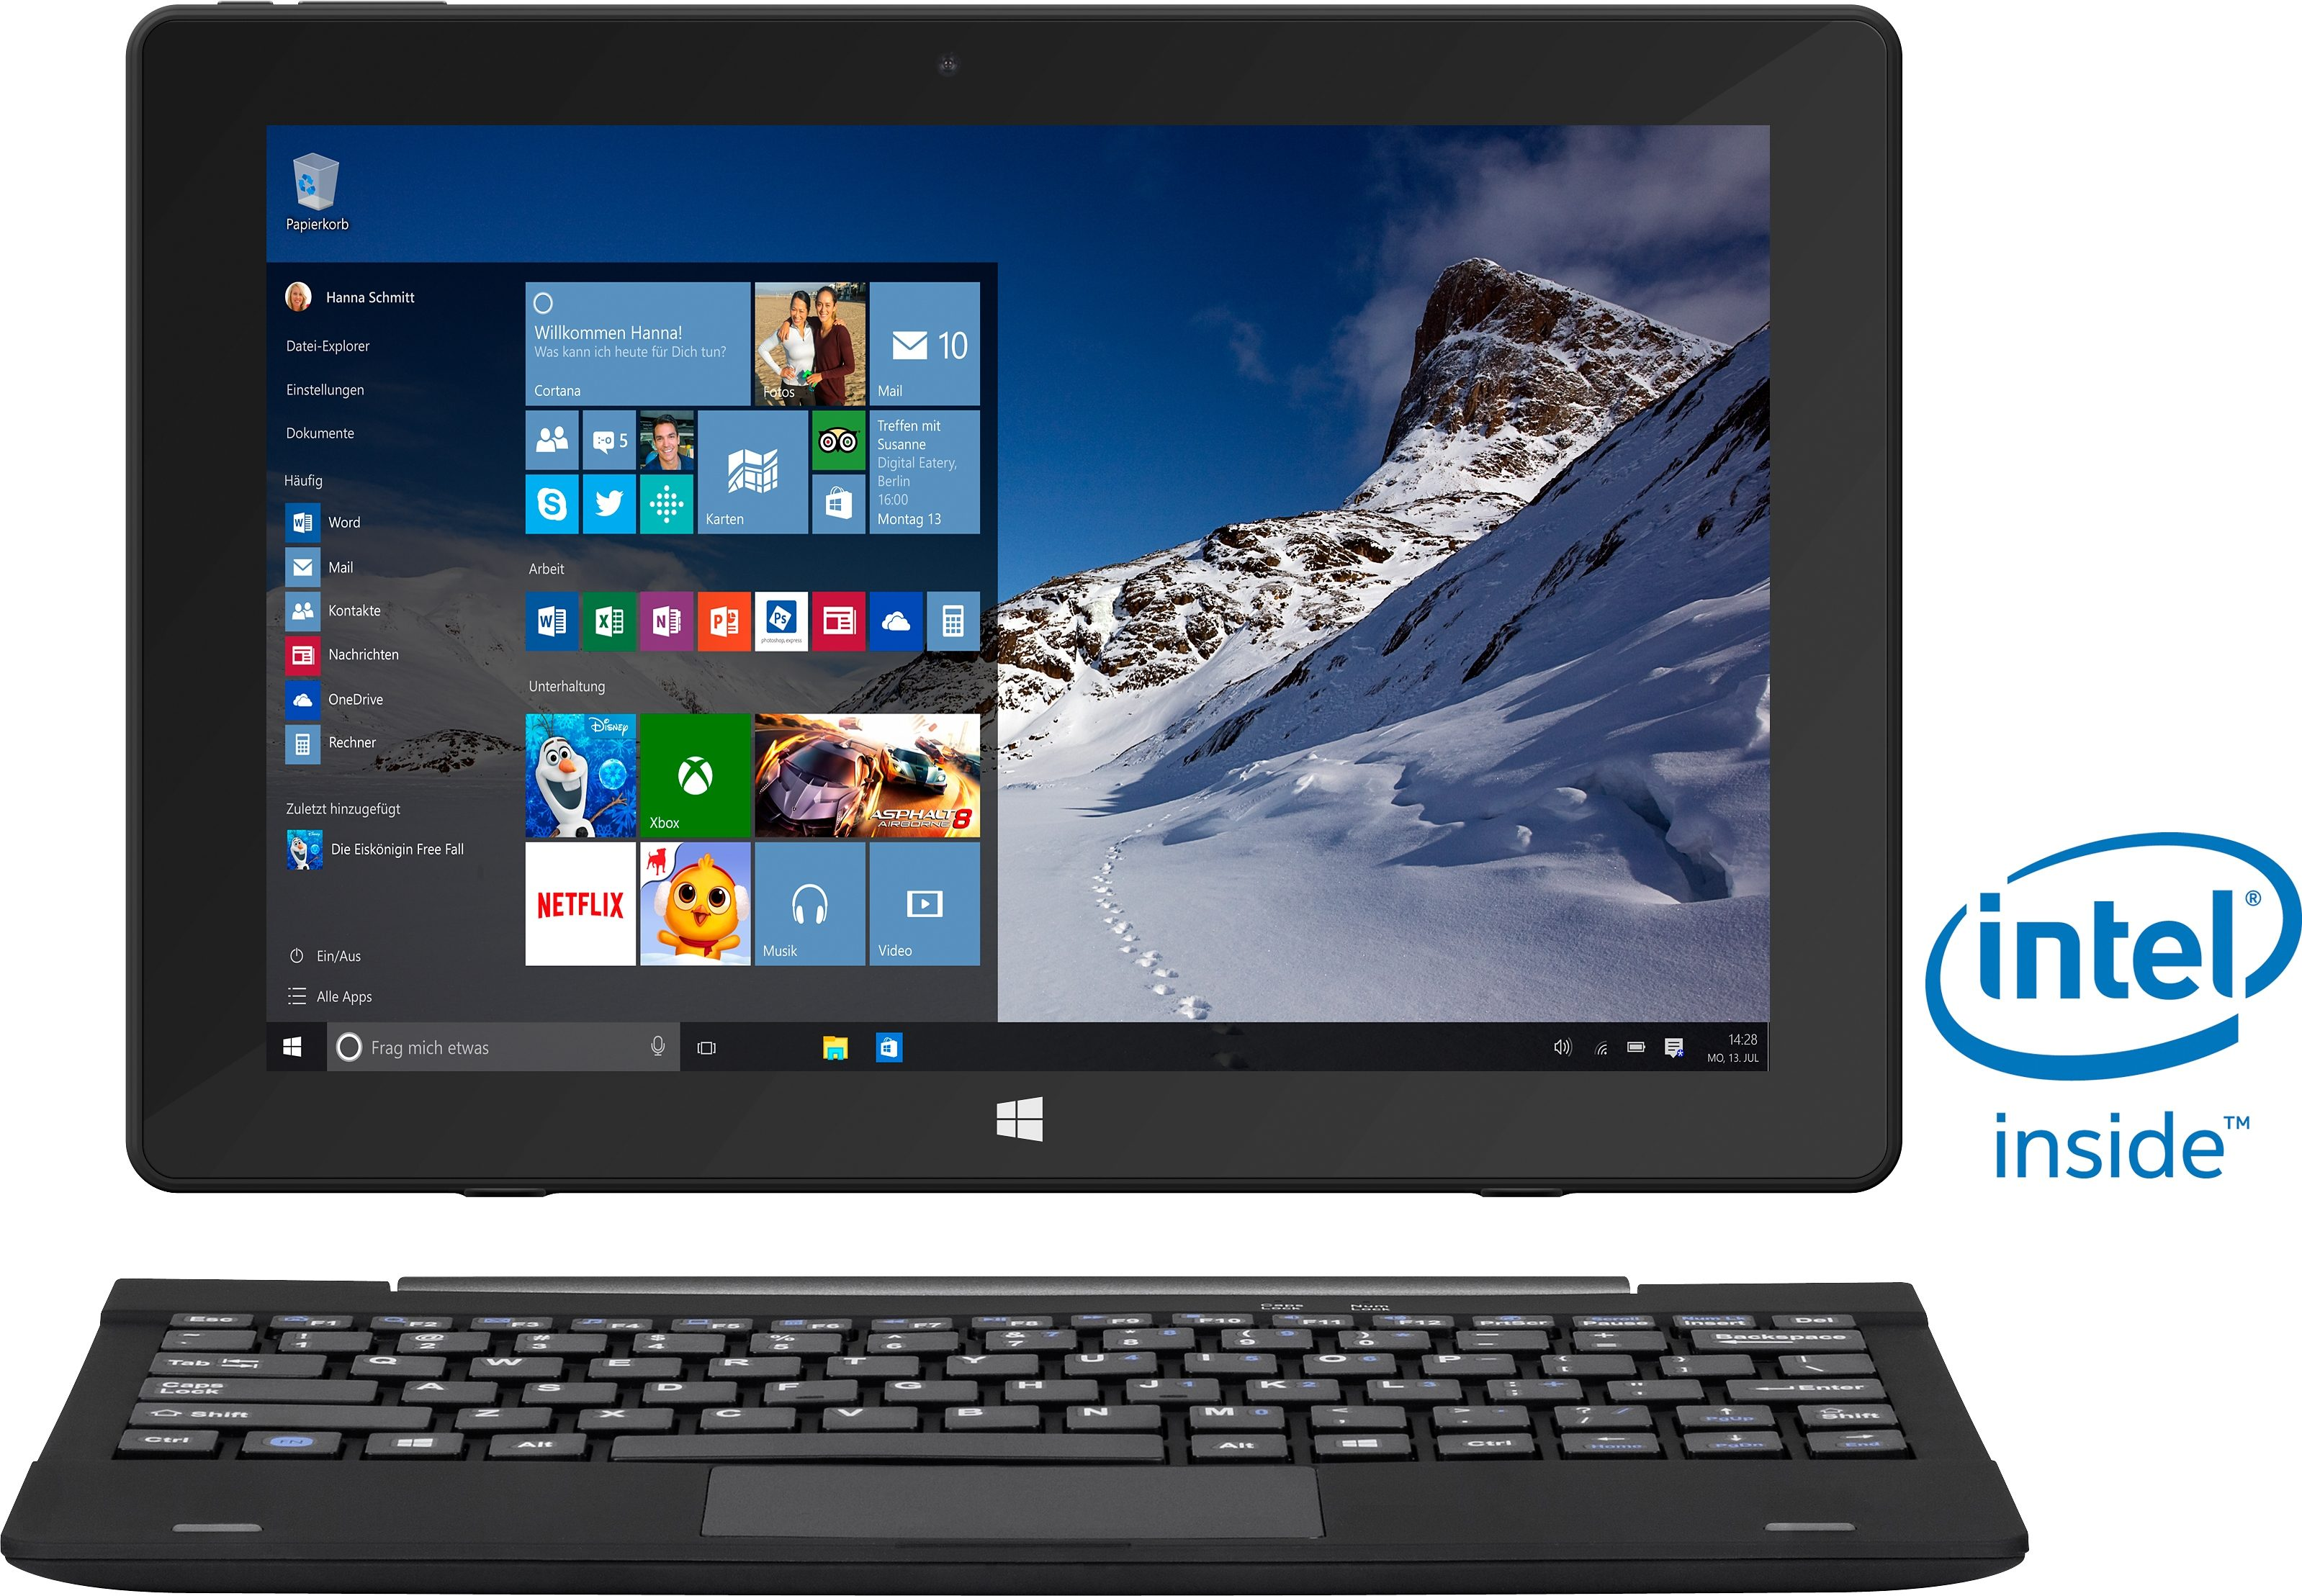 TrekStor SurfTab twin 10.1 Convertible Notebook, Intel® Atom™, 25,7 cm (10,1 Zoll), 32 GB Speicher